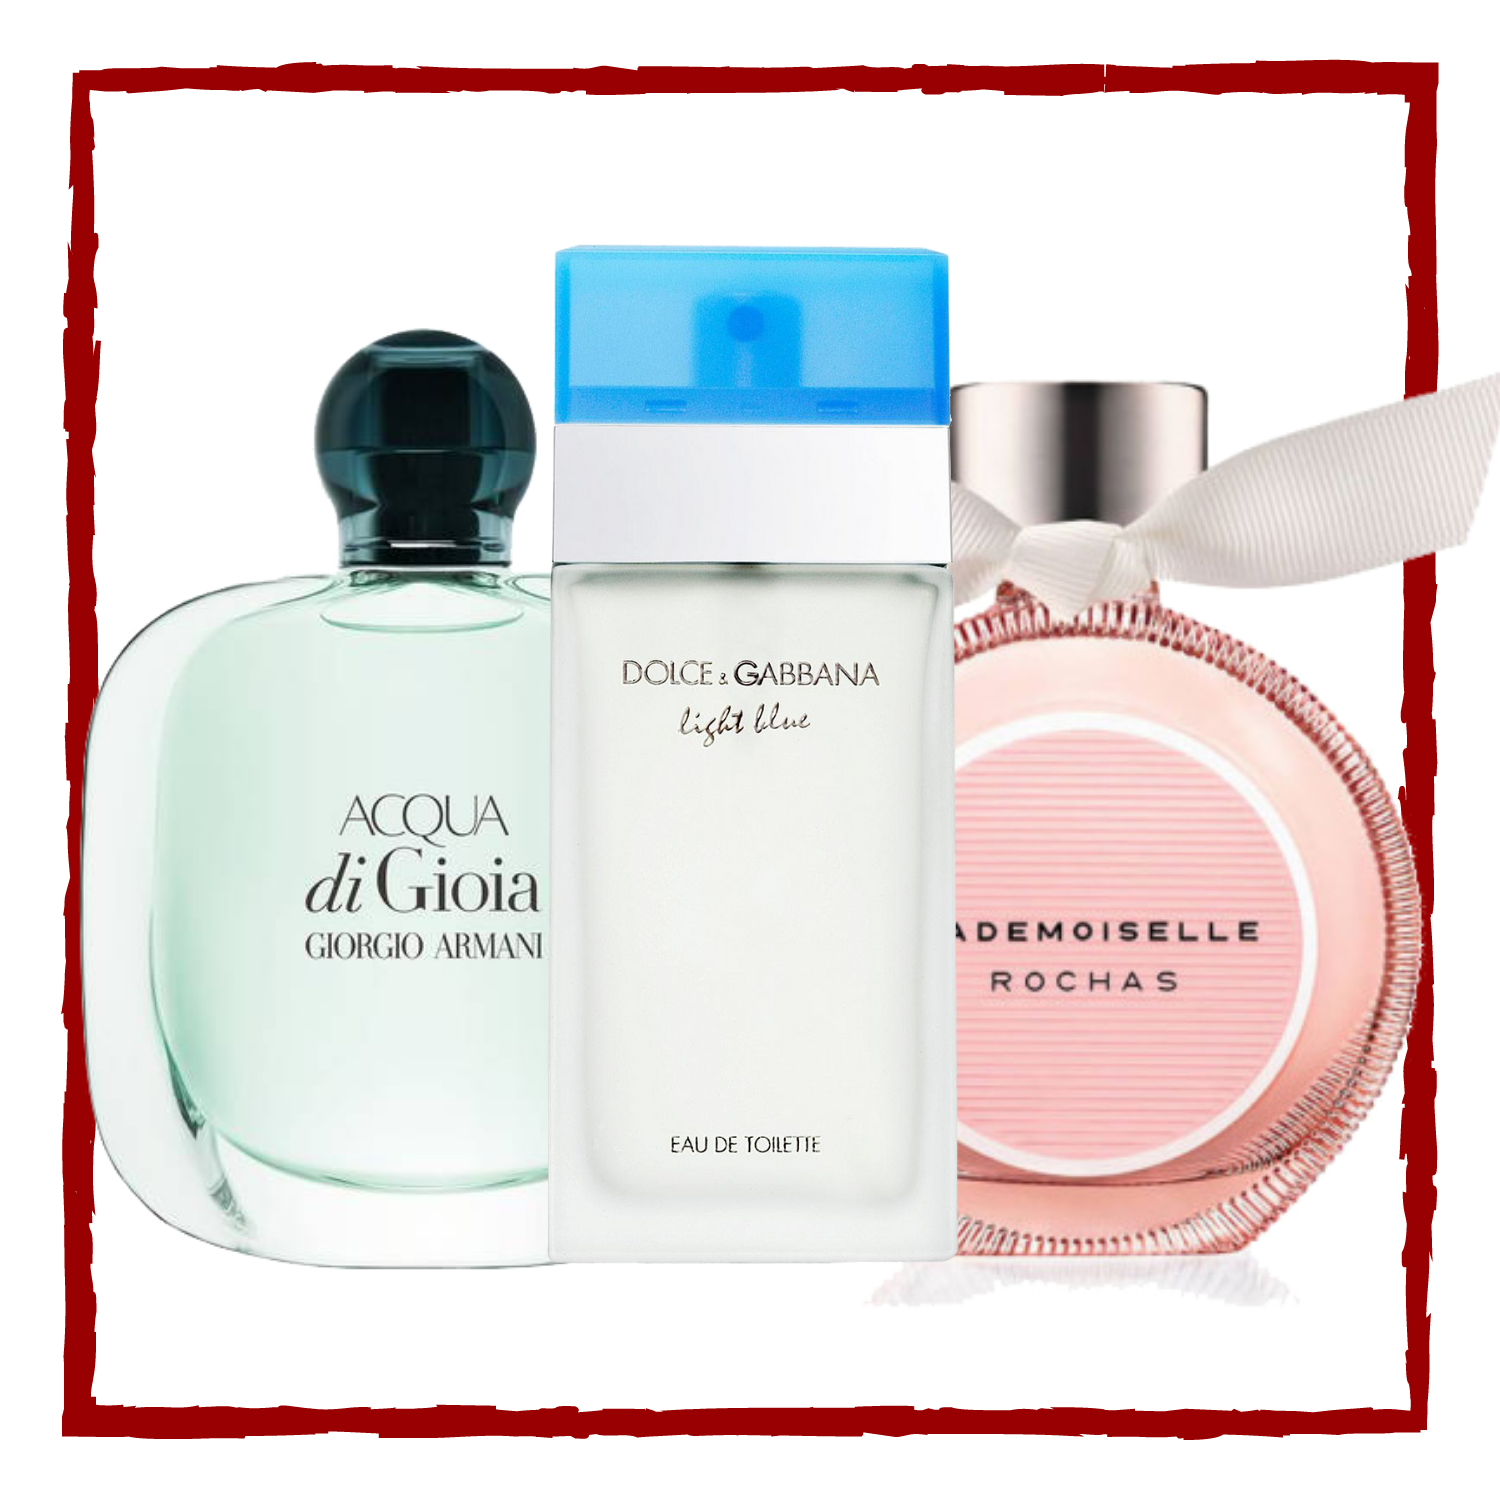 Top 3 female perfumes for this summer 2019